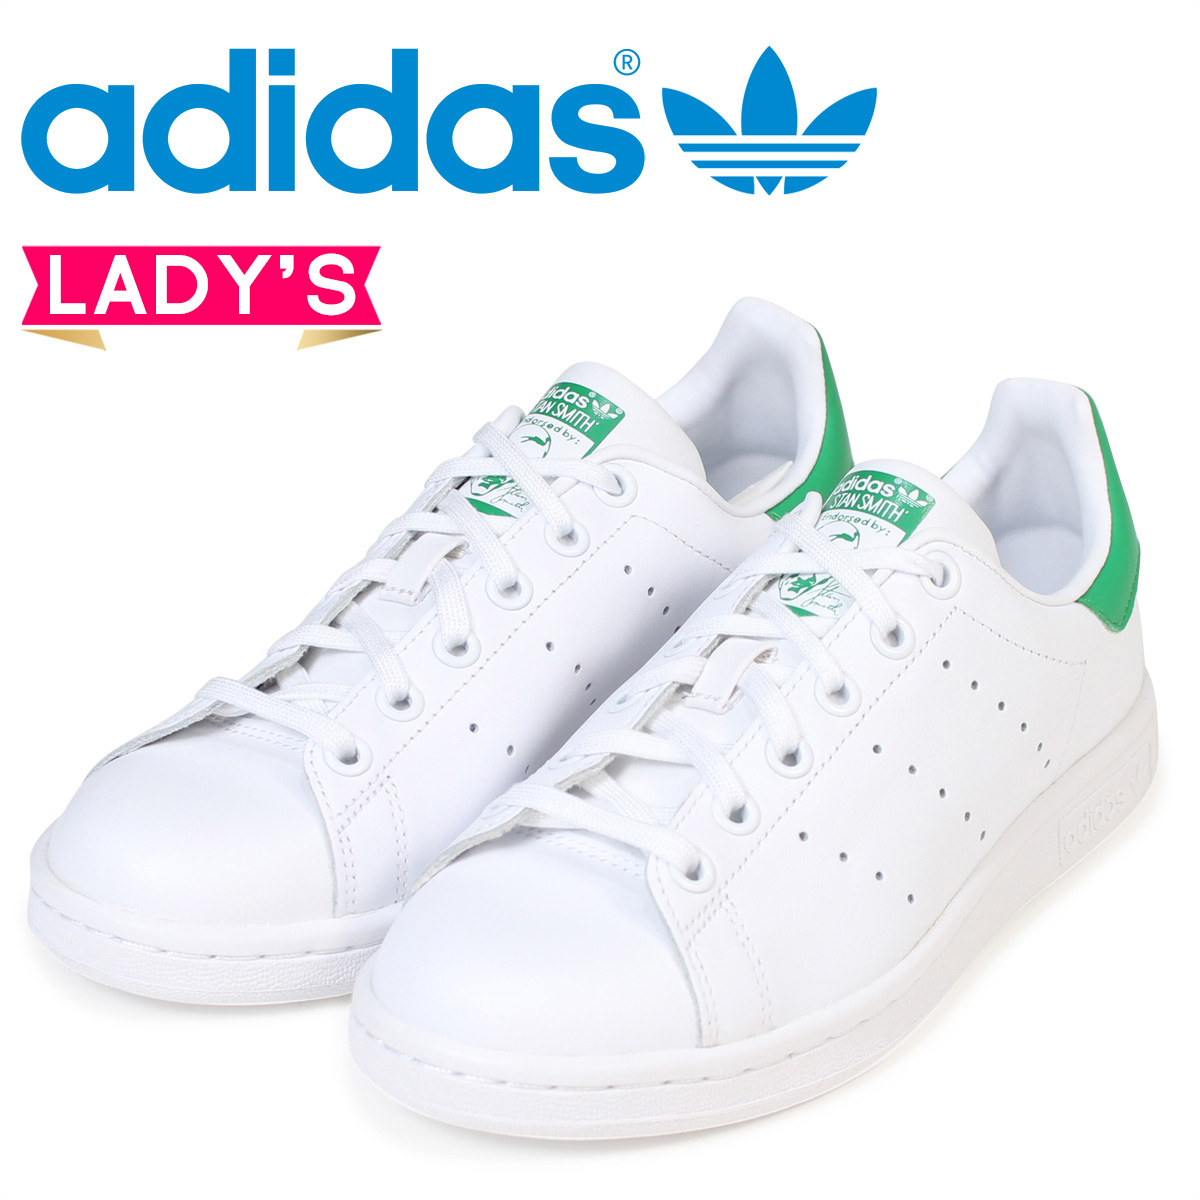 first rate cheap for sale designer fashion adidas Originals Stan Smith Lady's sneakers Adidas originals STAN SMITH J  M20605 shoes white [172]